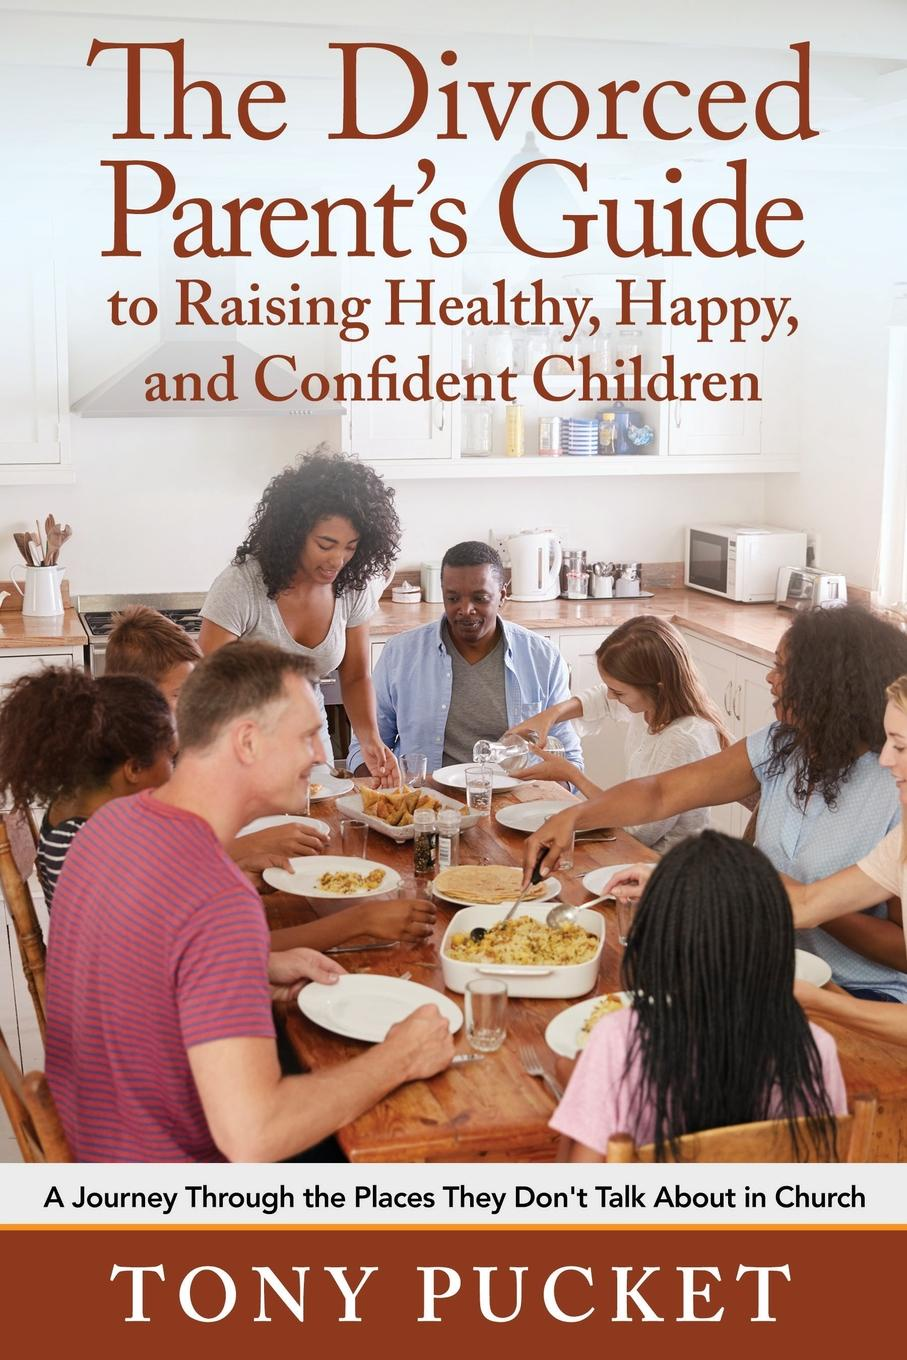 Tony Pucket The Divorced Parent.s Guide to Raising Healthy, Happy . Confident Children. A Journey Through the Places They Don.t Talk About in Church grainne smith anorexia and bulimia in the family one parent s practical guide to recovery